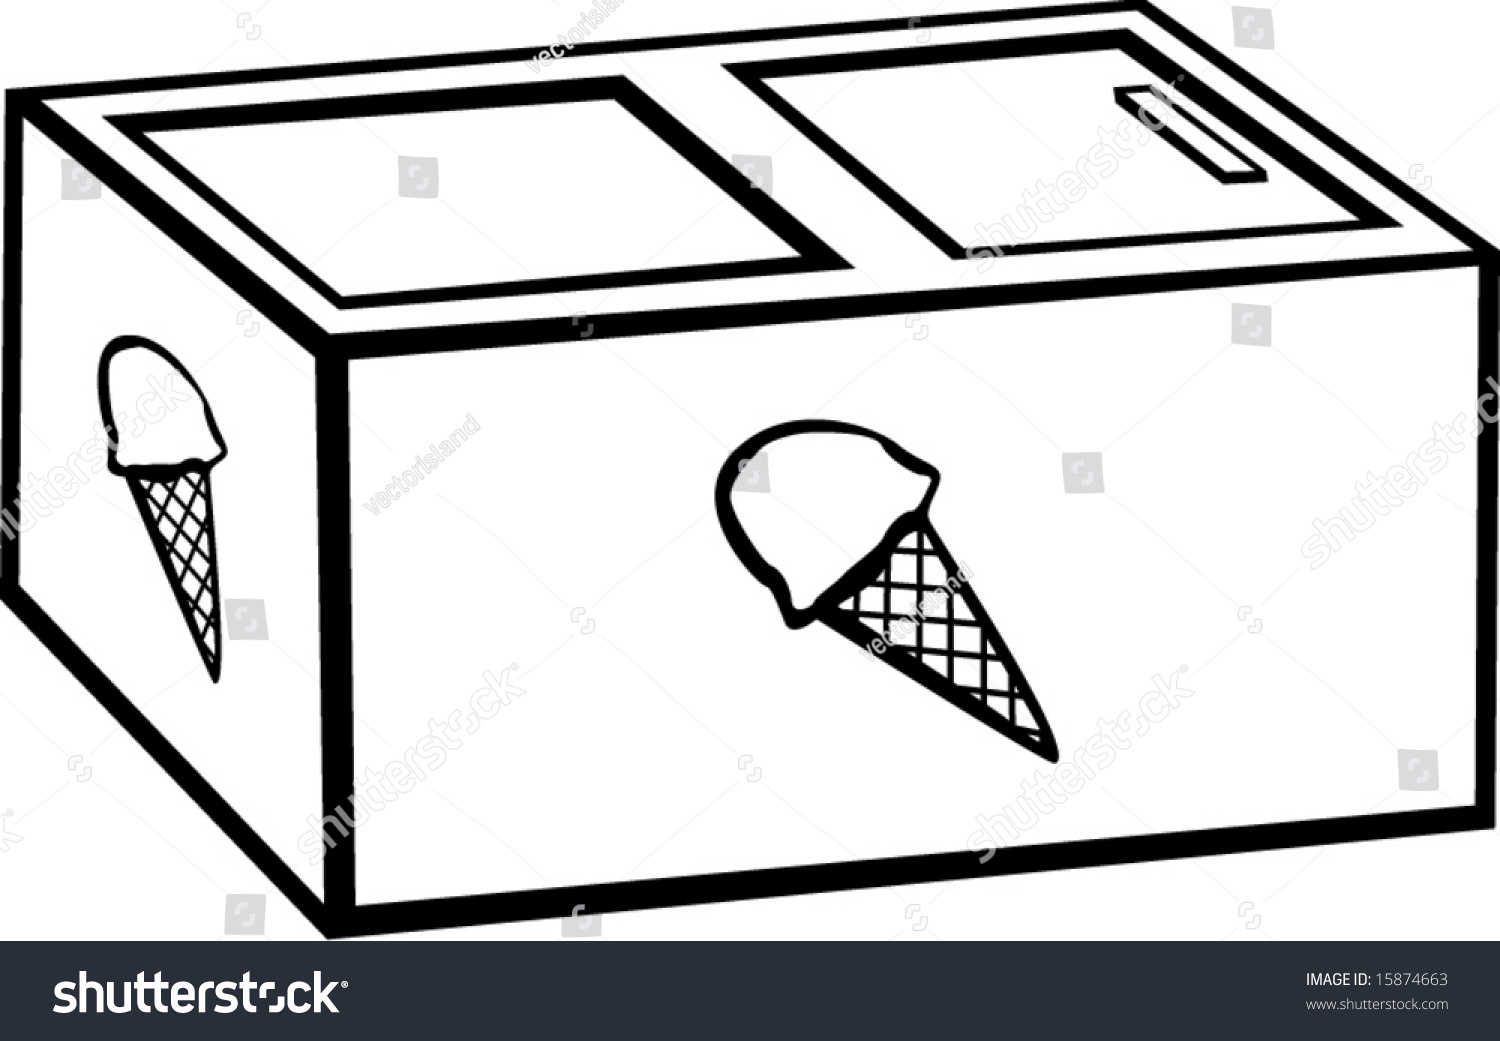 Ice Cream Vending Freezer Stock Vector 15874663 - Shutterstock